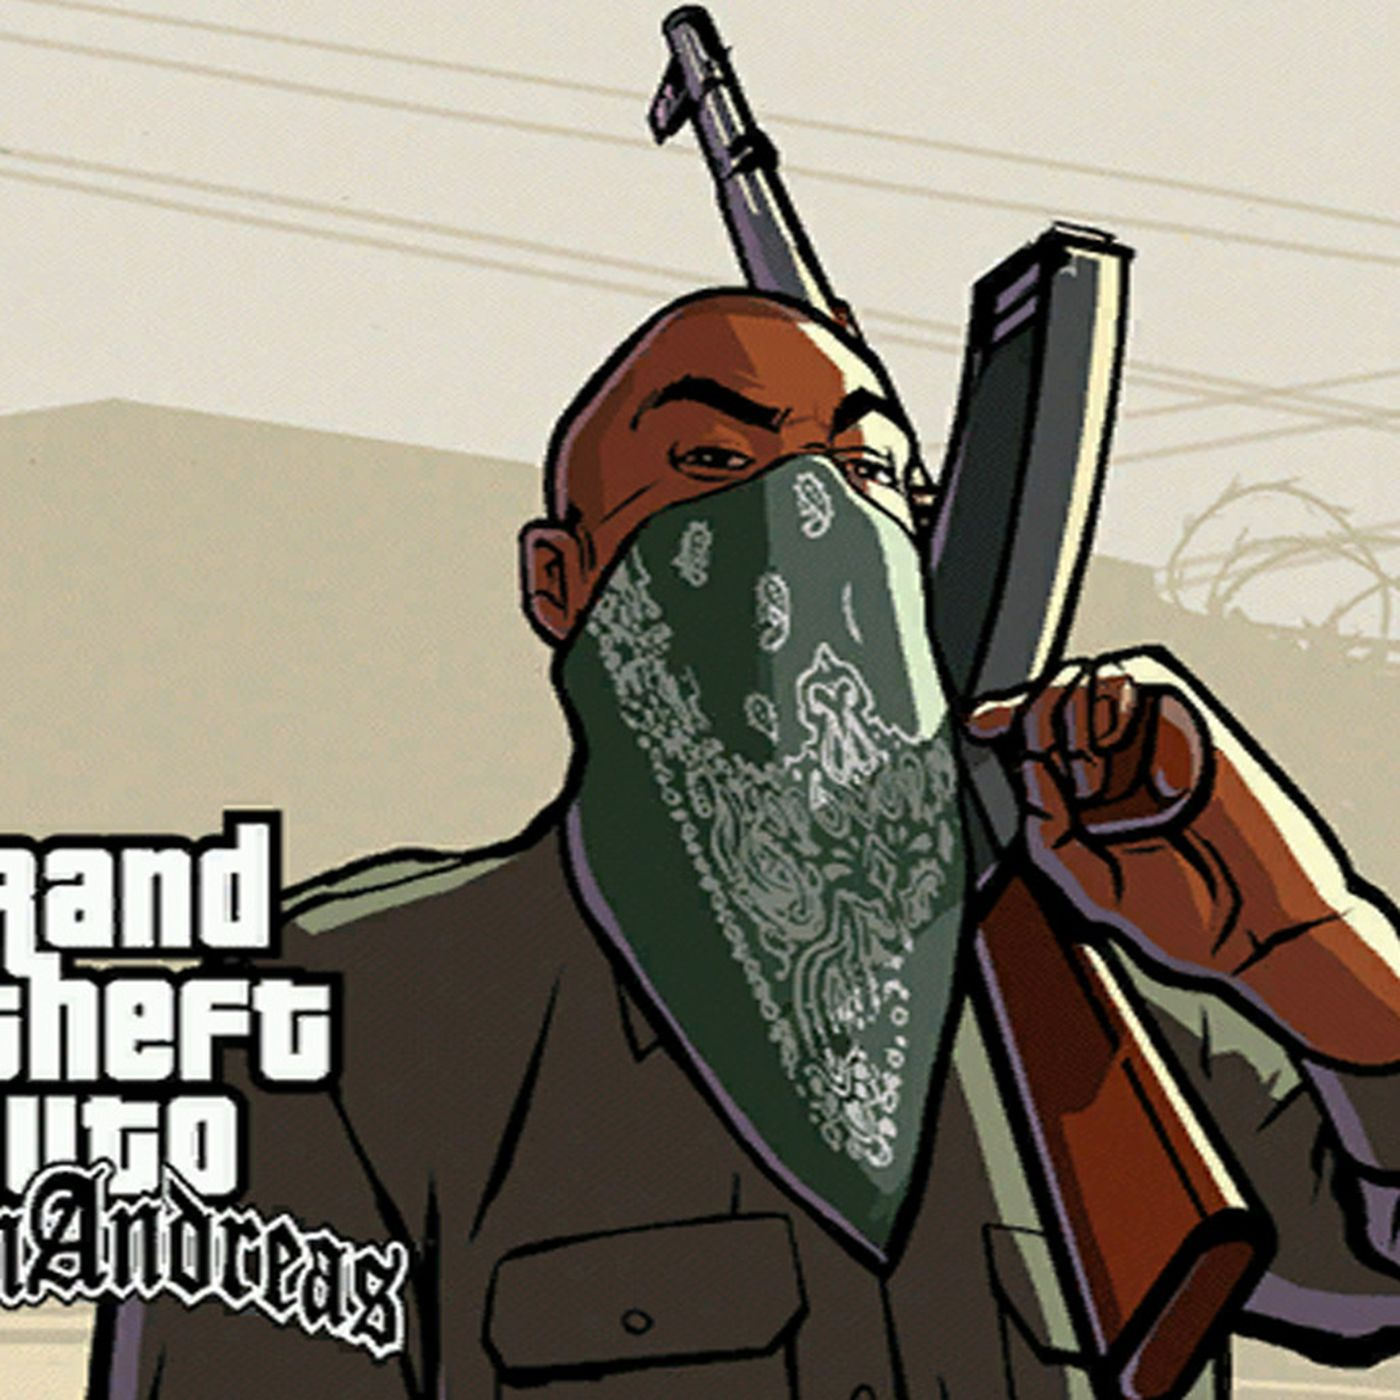 Grand Theft Auto San Andreas Hot Coffee Modder Tells The Story